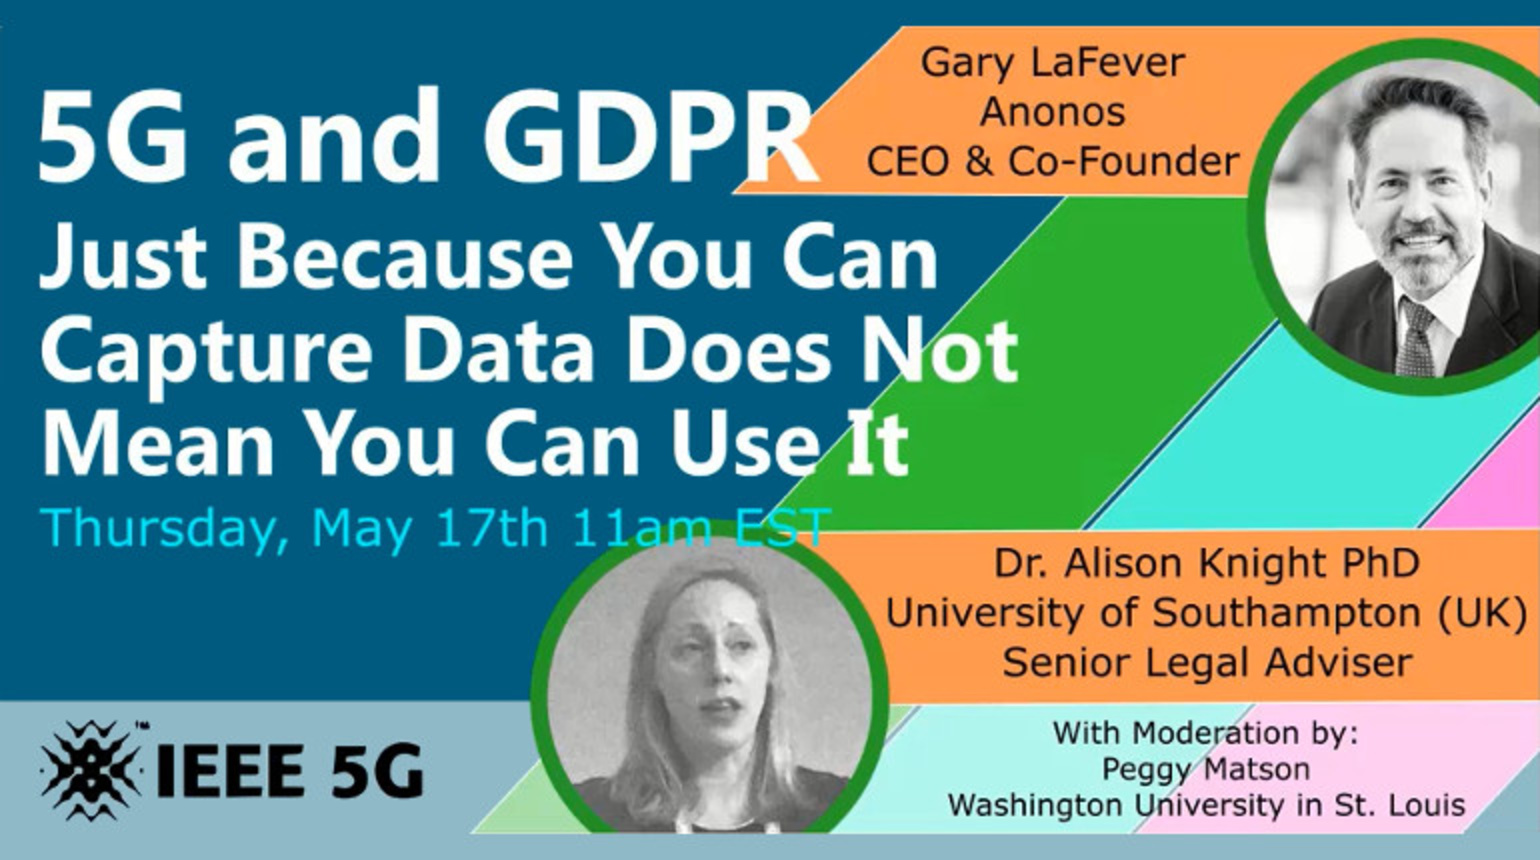 IEEE Future Networks: 5G and GDPR - Just Because You Can Capture Data Does Not Mean You Can Use It